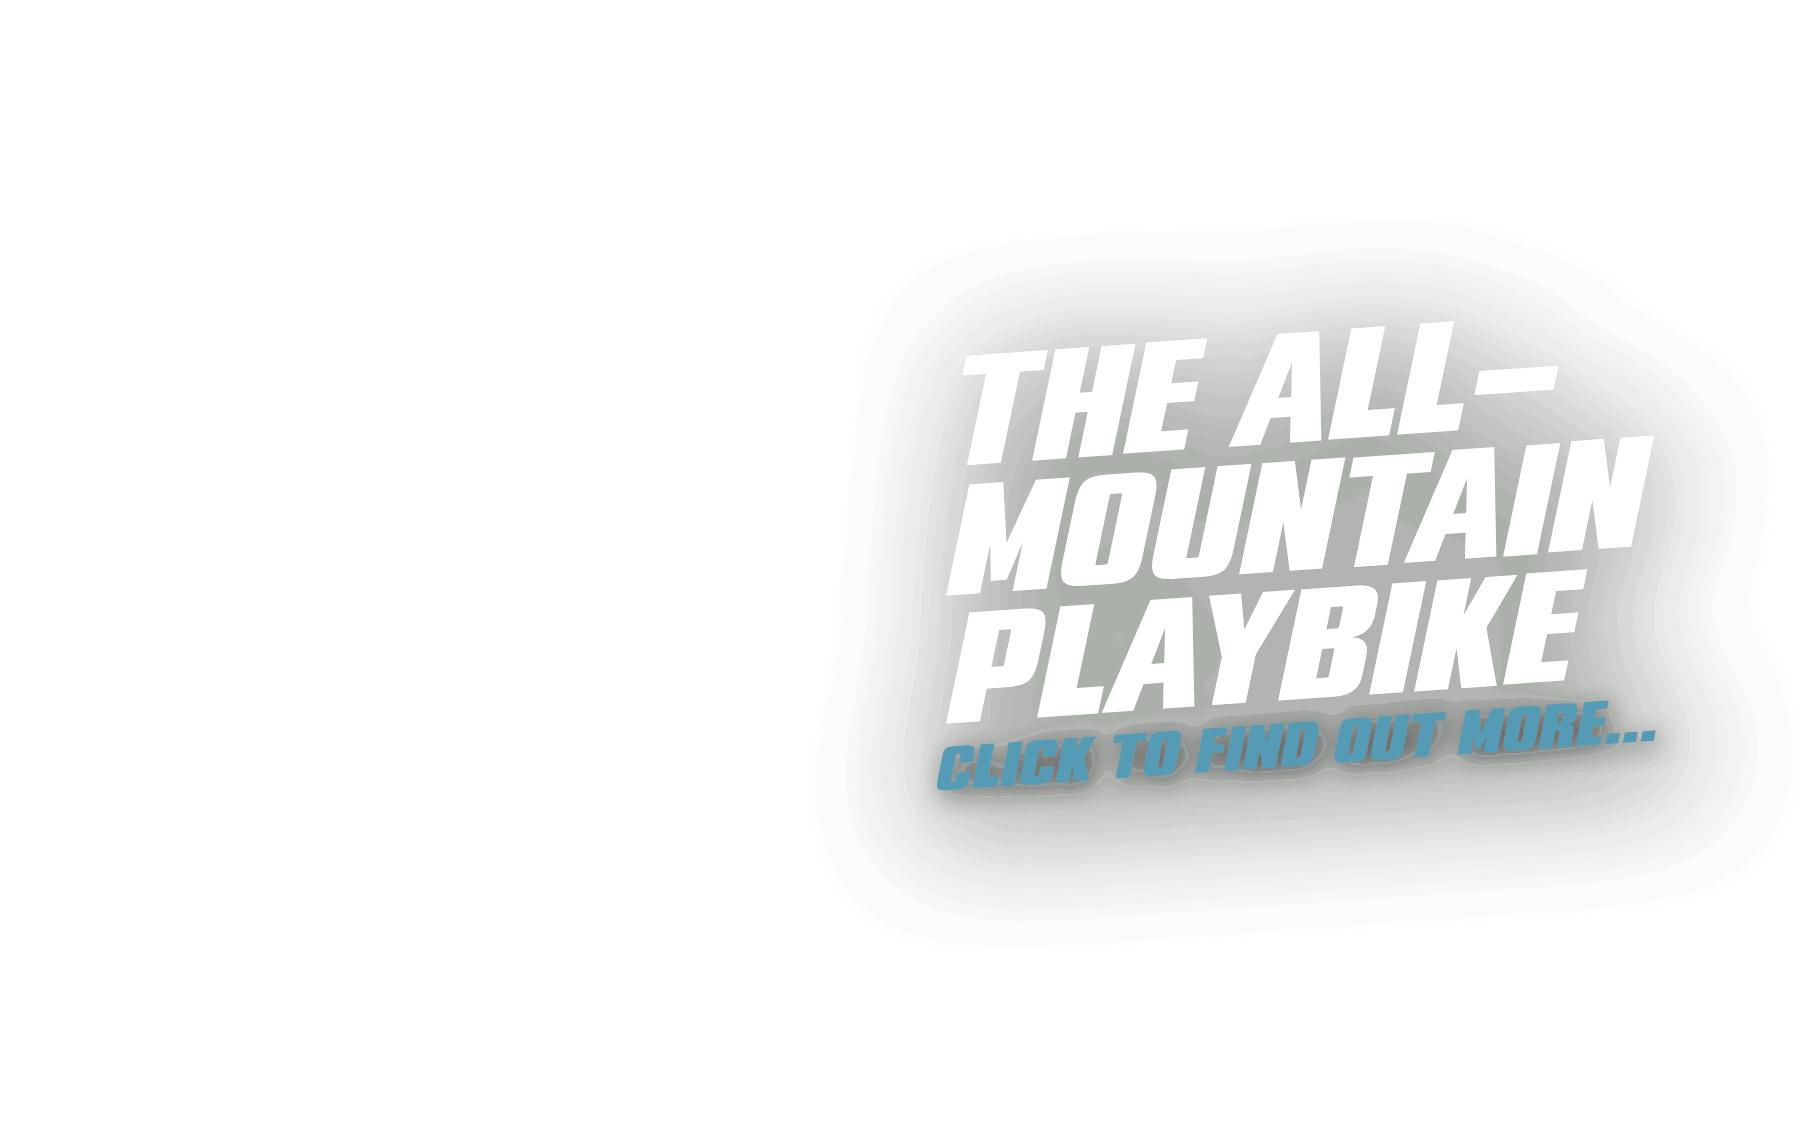 The all mountain playbike, click to find out more.